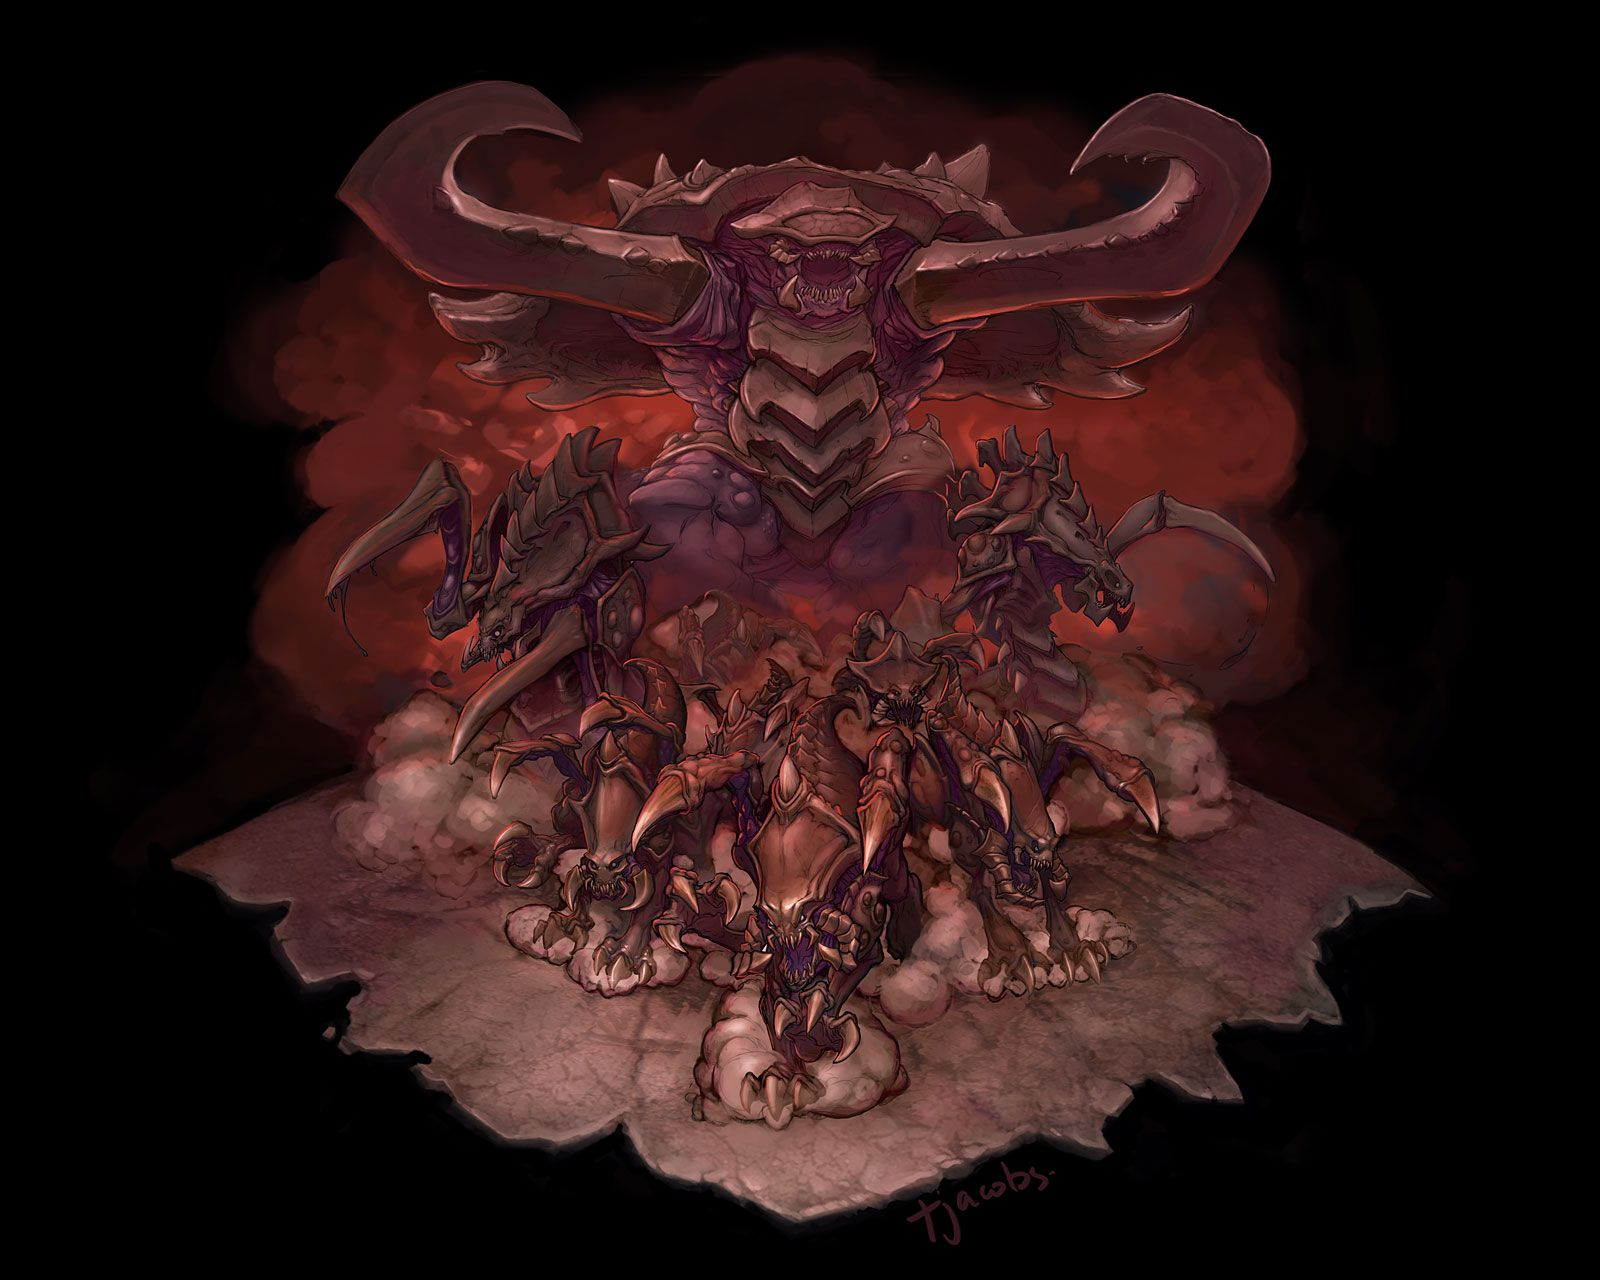 Zerg rush - The Zerg Why Pick Just One When The Entire Concept Of This Race Is So